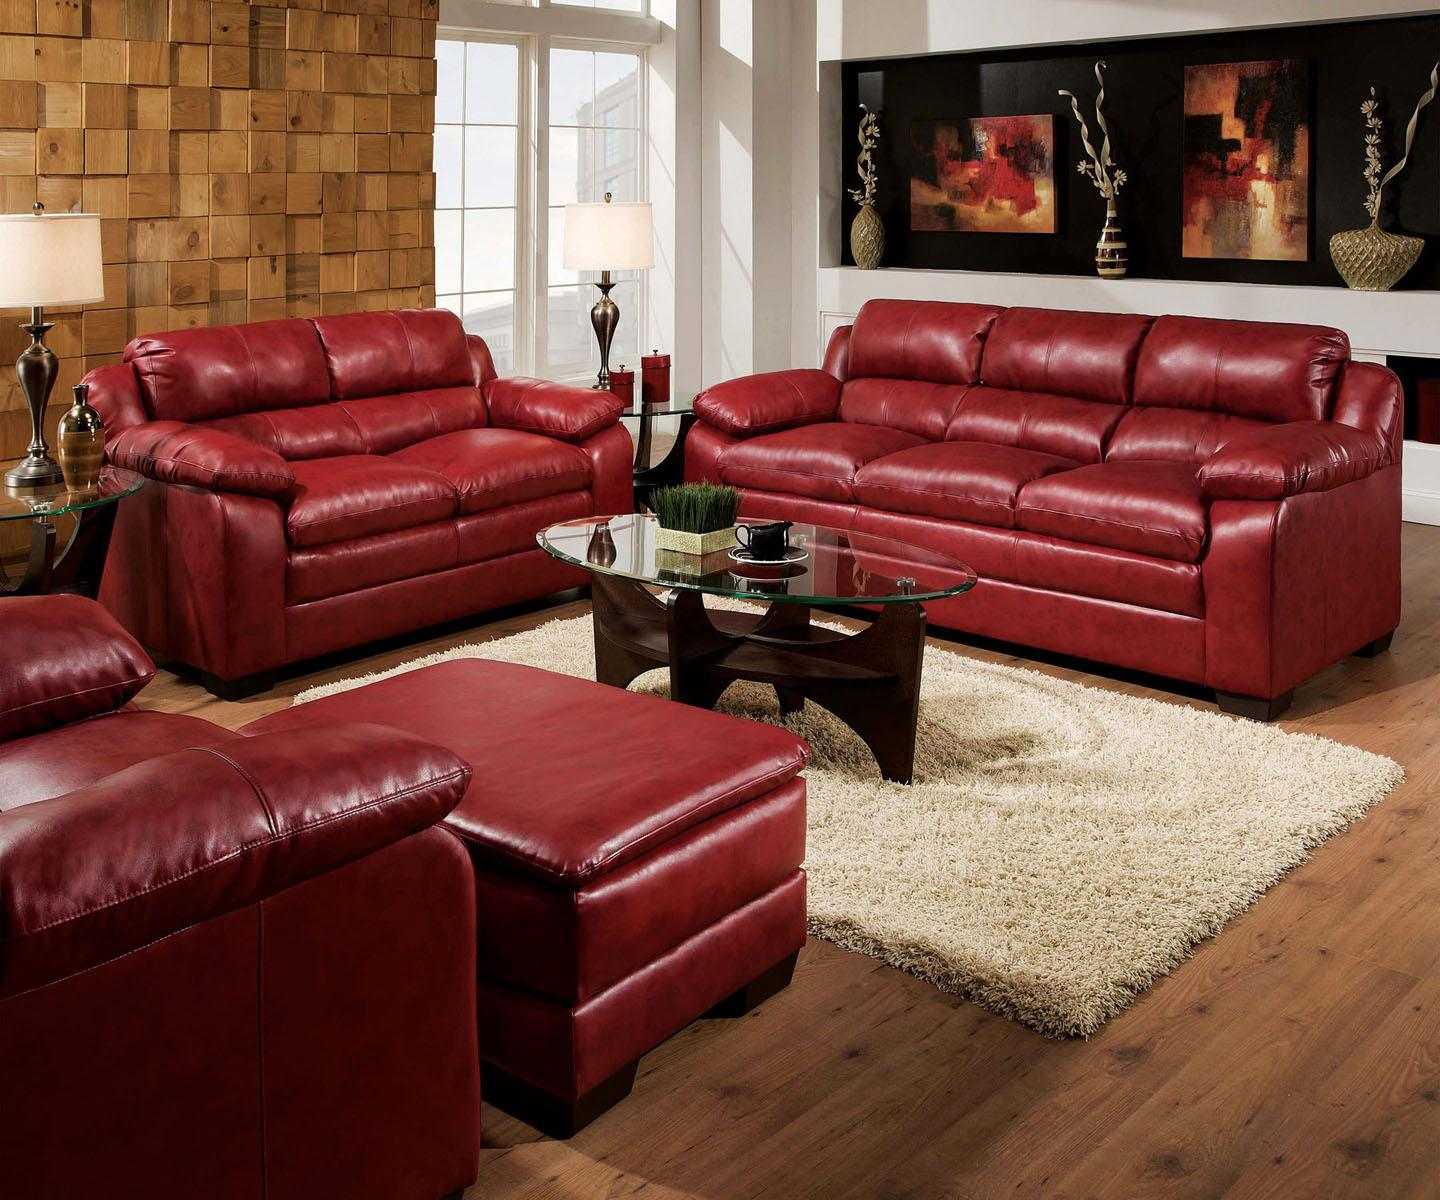 Acme Furniture Jeremy Red Stationary Living Room Group - Item Number: 5059 Stationary Living Room Group